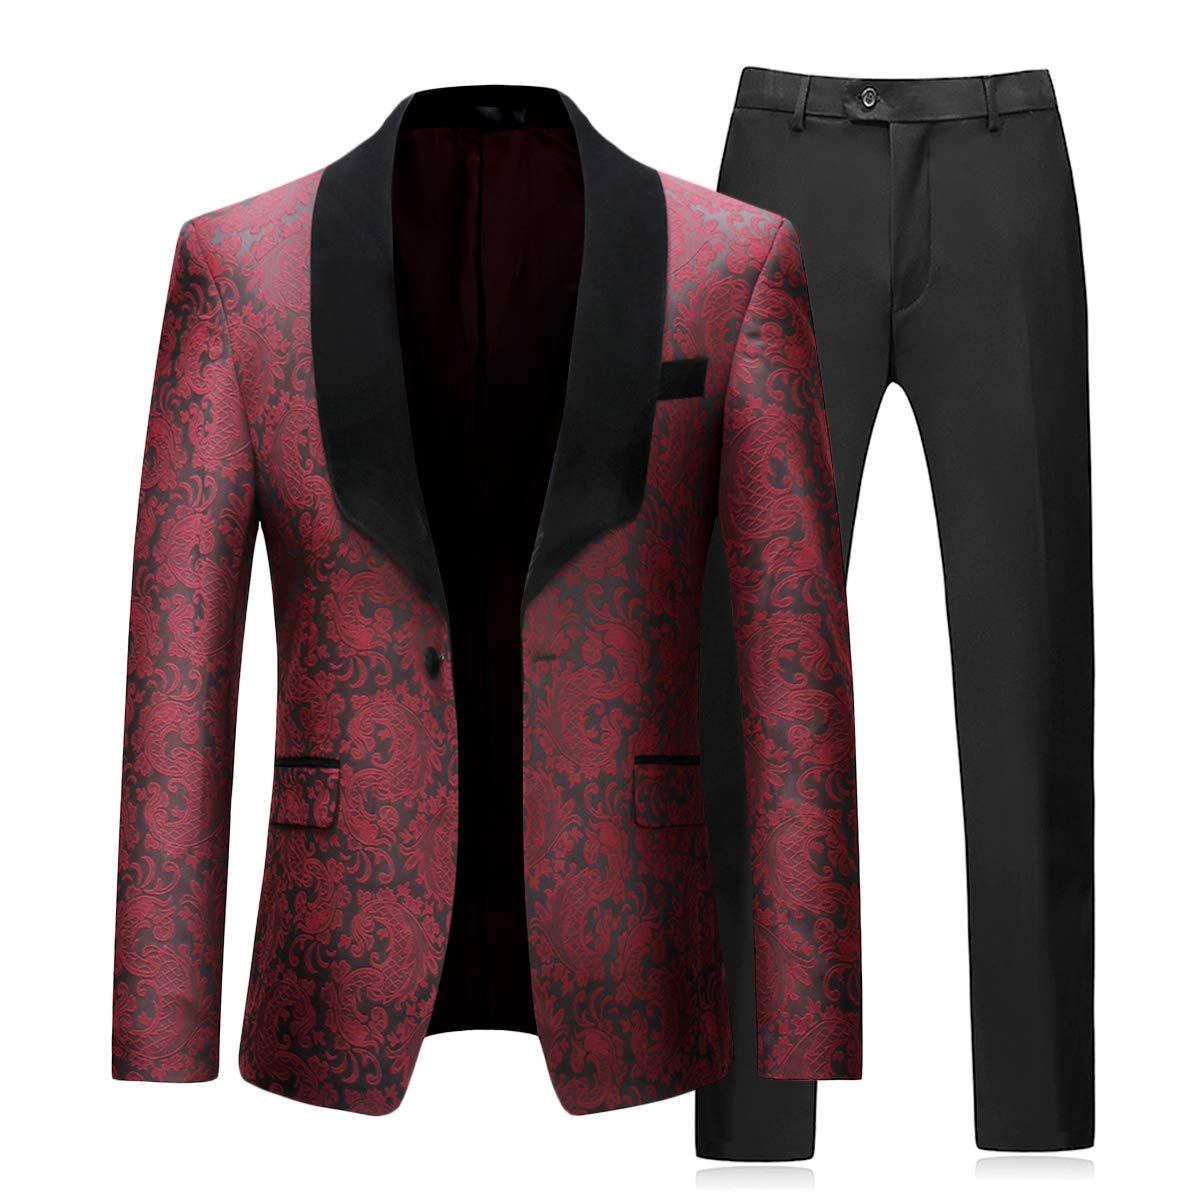 Mens Suits 2 Pieces Slim Fit Wedding Business Dinner Suits Black Red White Tuxedo Jacket Trousers